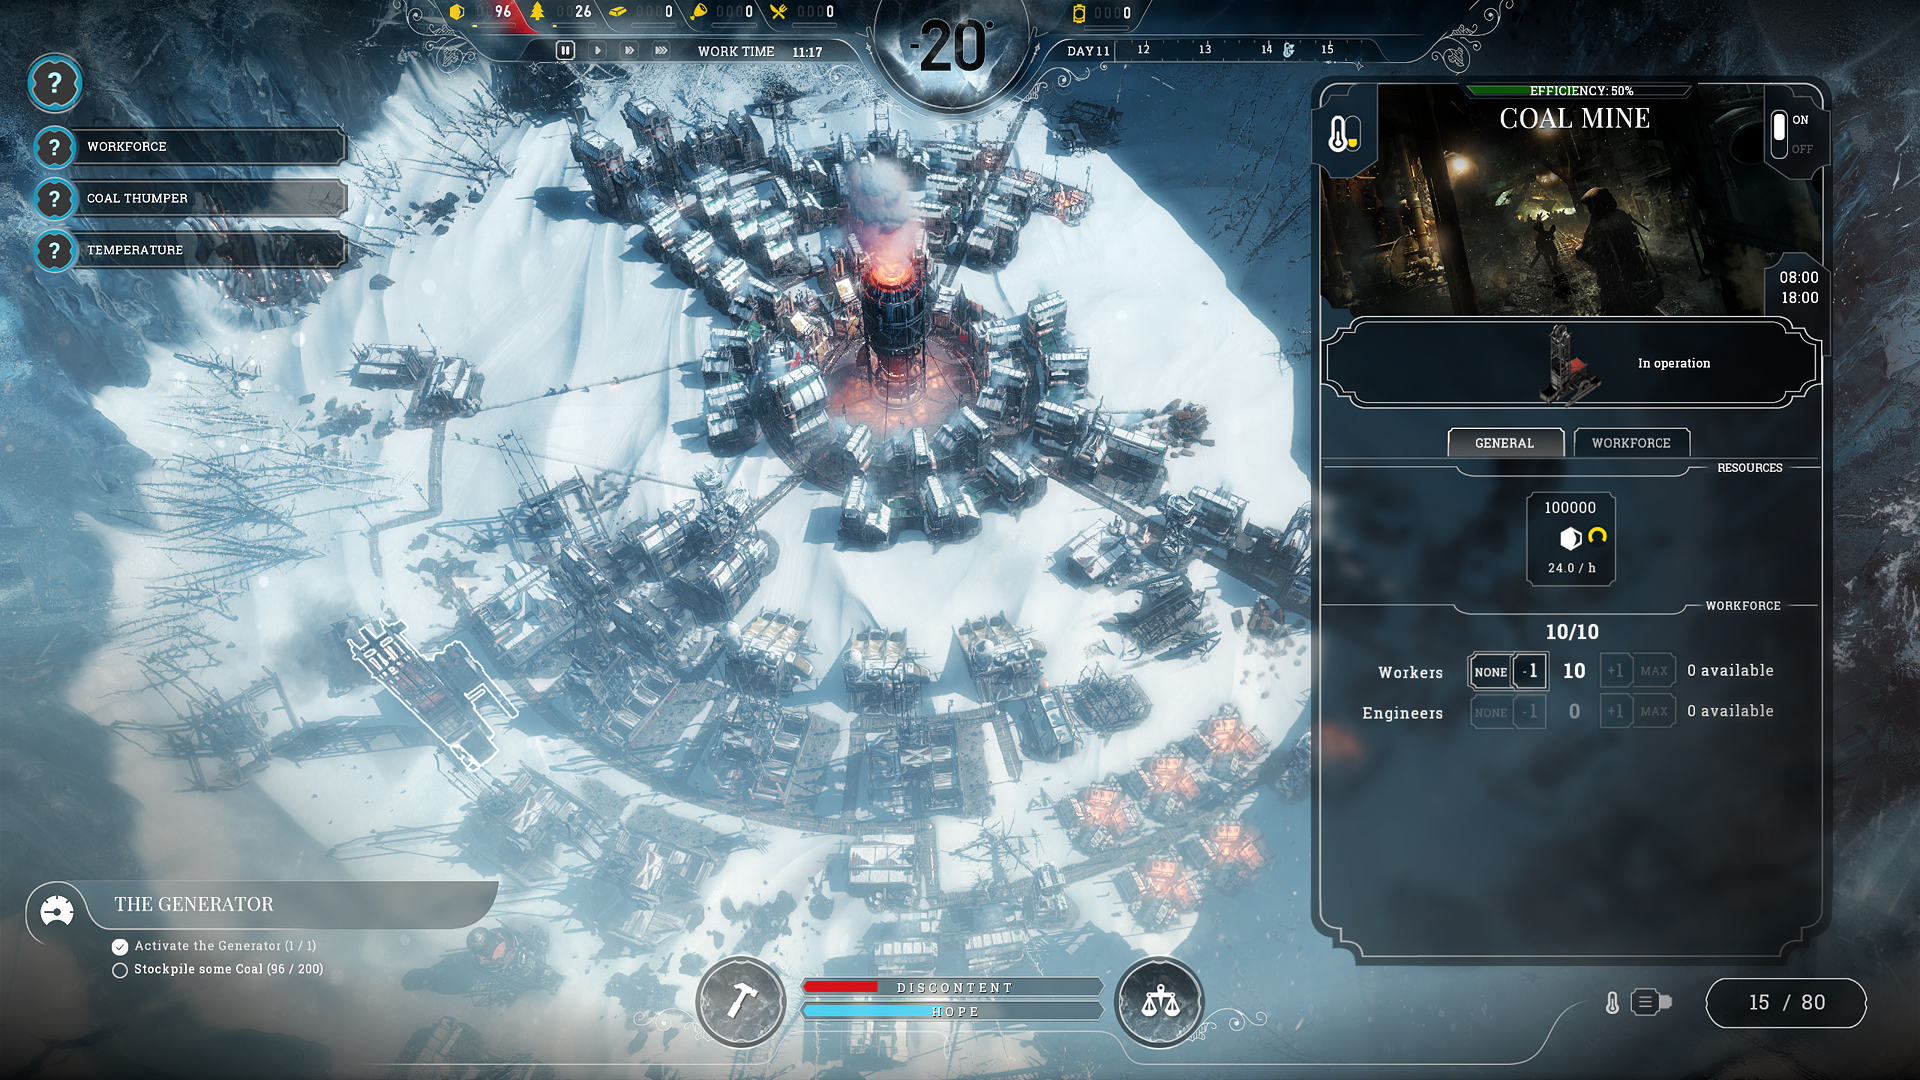 Frostpunk 2018 Game Wallpapers: Wccftech's Most Anticipated Indie Games Of 2018